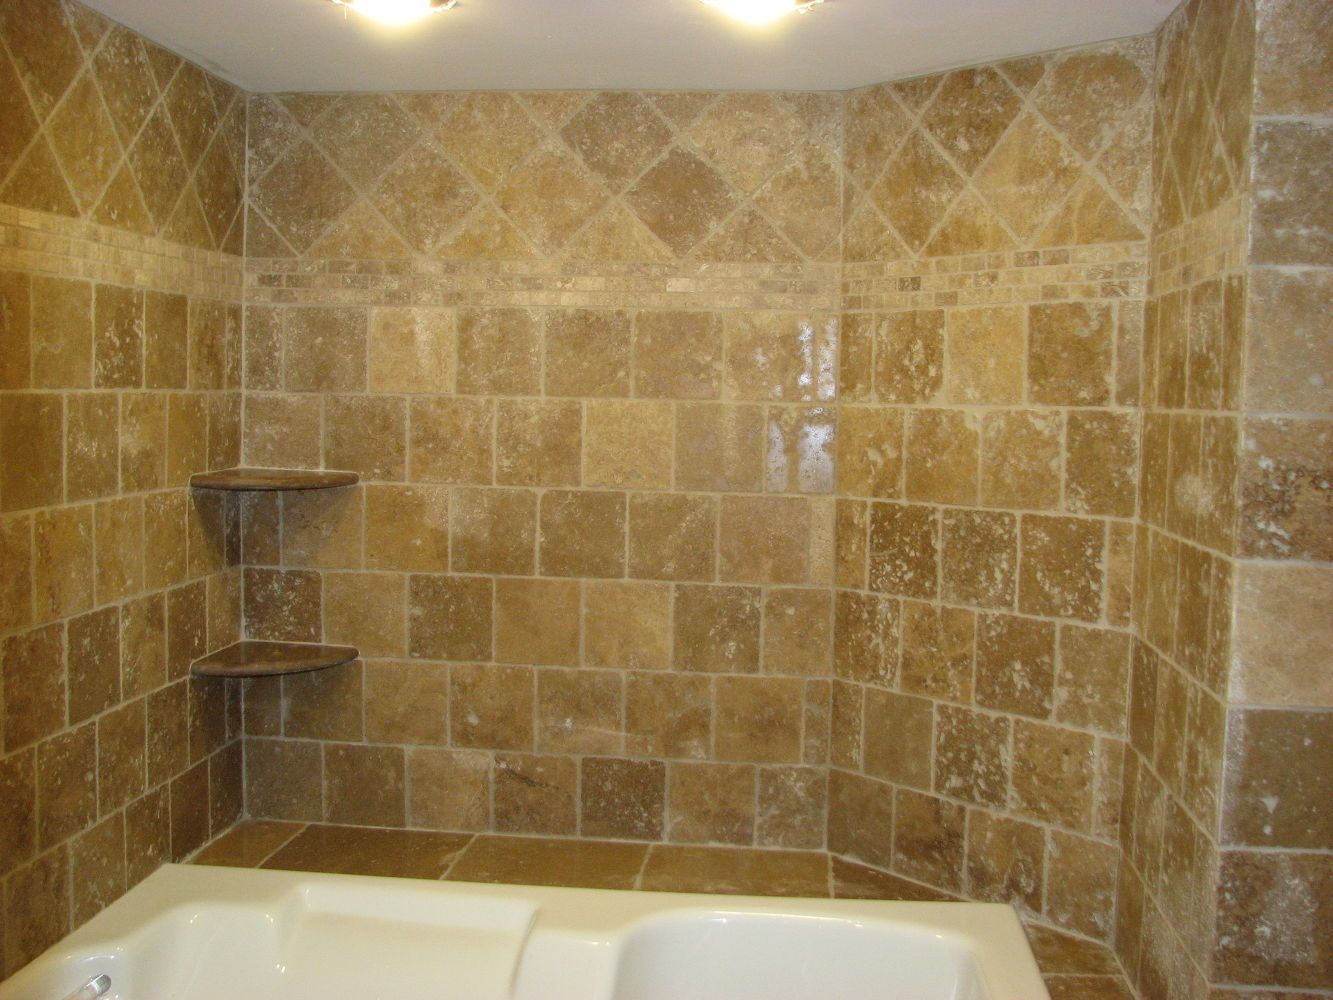 Small master bathroom budget makeover master bathrooms travertine tile jacuzzi bathroom ideas tiling travertine tile installation berlin nj dailygadgetfo Choice Image